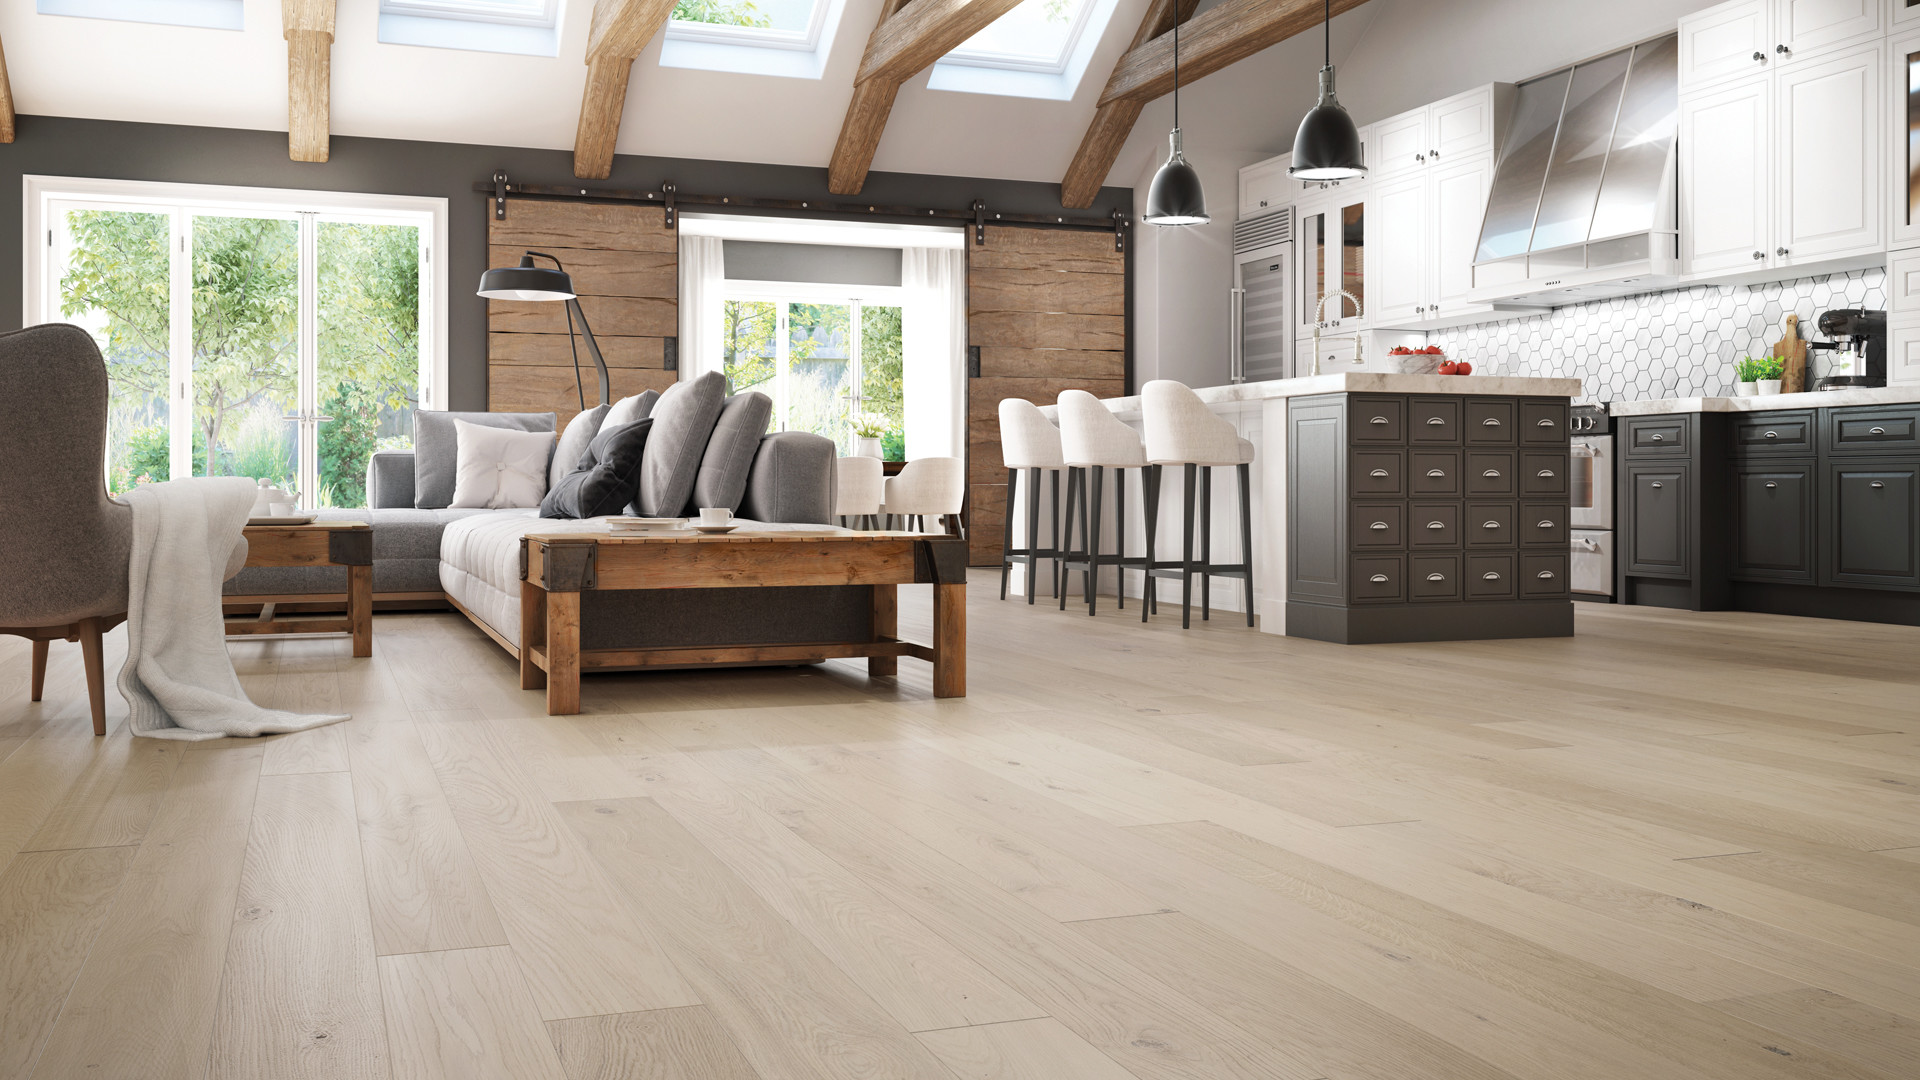 house with different color hardwood floors of 4 latest hardwood flooring trends of 2018 lauzon flooring inside this technology brings your hardwood floors and well being to a new level by improving indoor air quality by up to 85 and decomposing up to 99 6 of